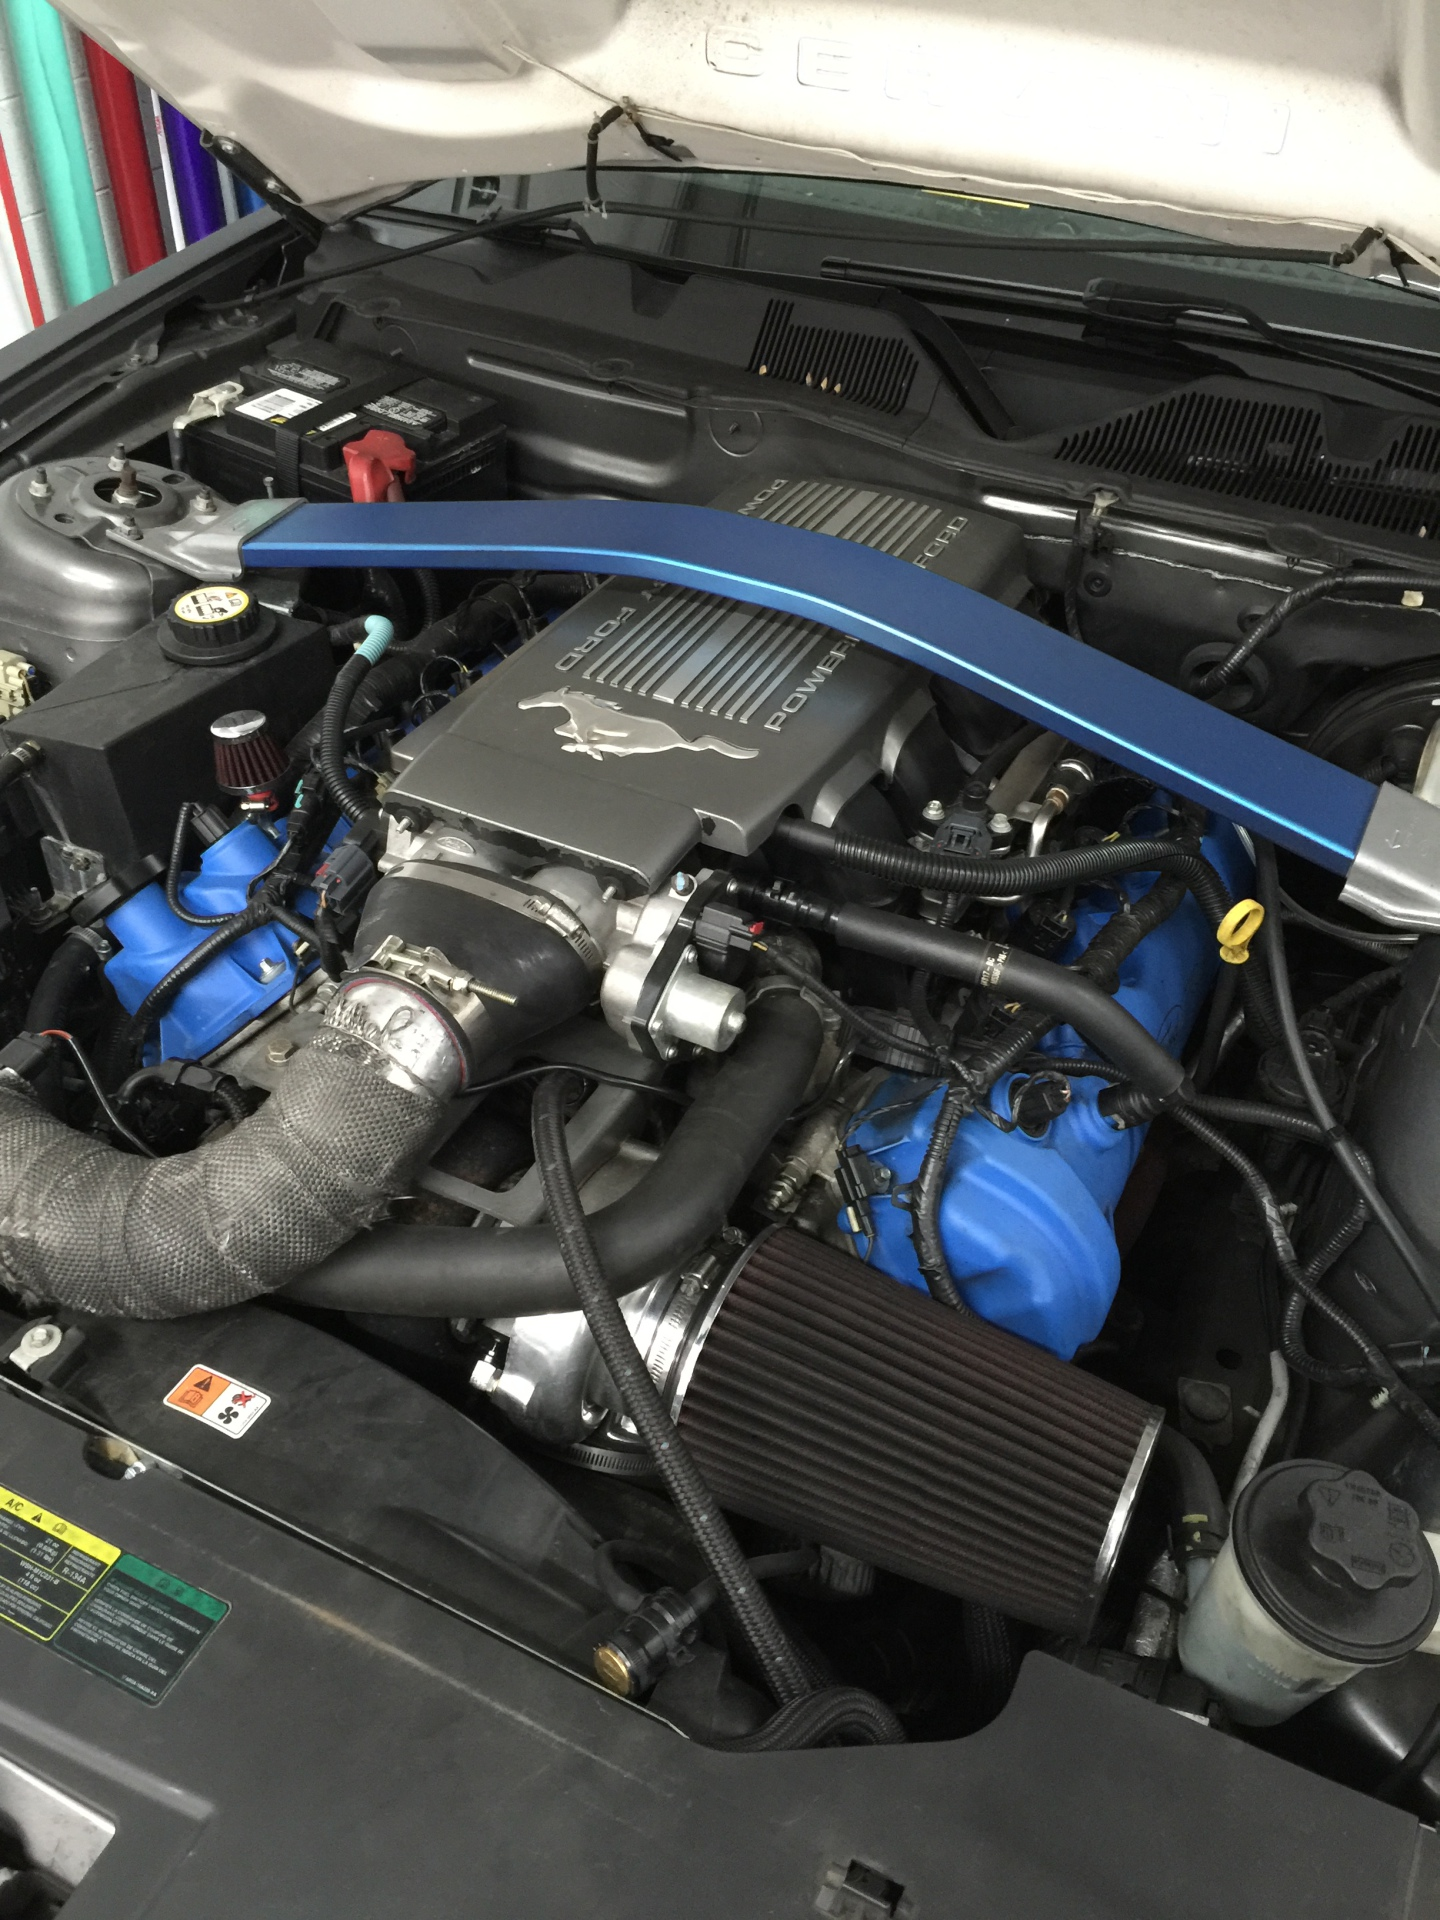 Comp Oil-less turbo kit installed on 4.6 mustang.